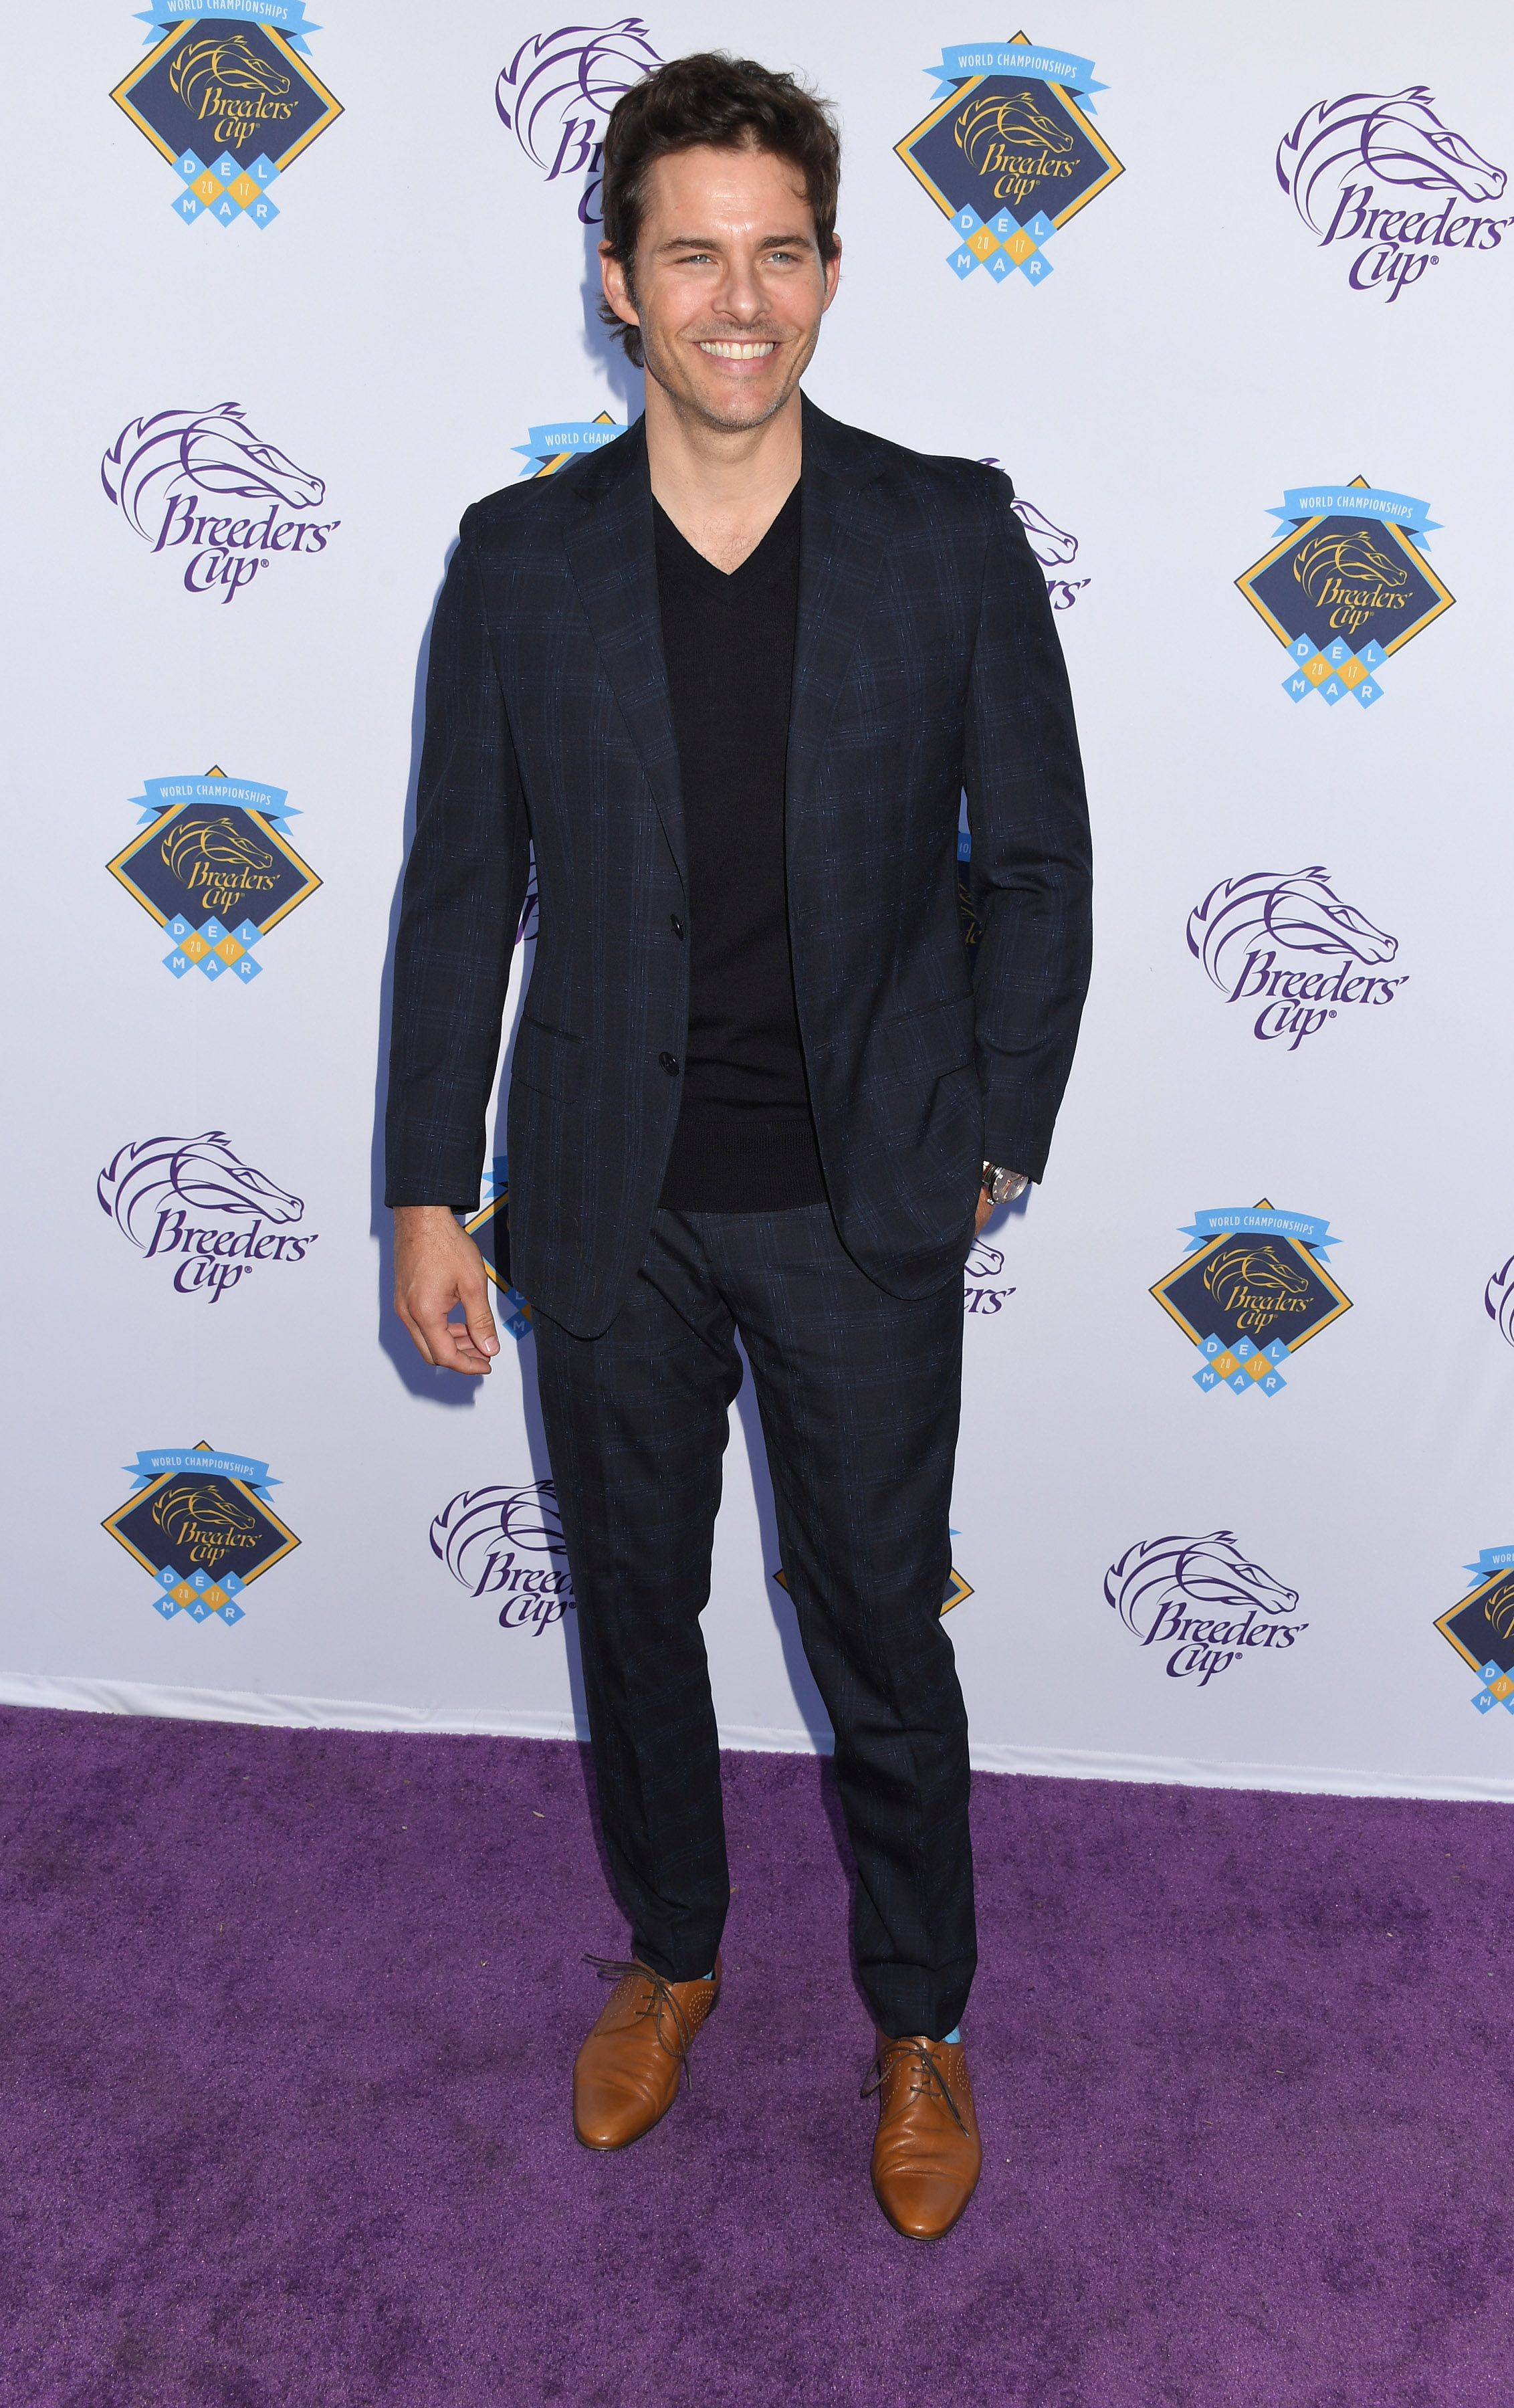 James Marsden at Breeders Cup